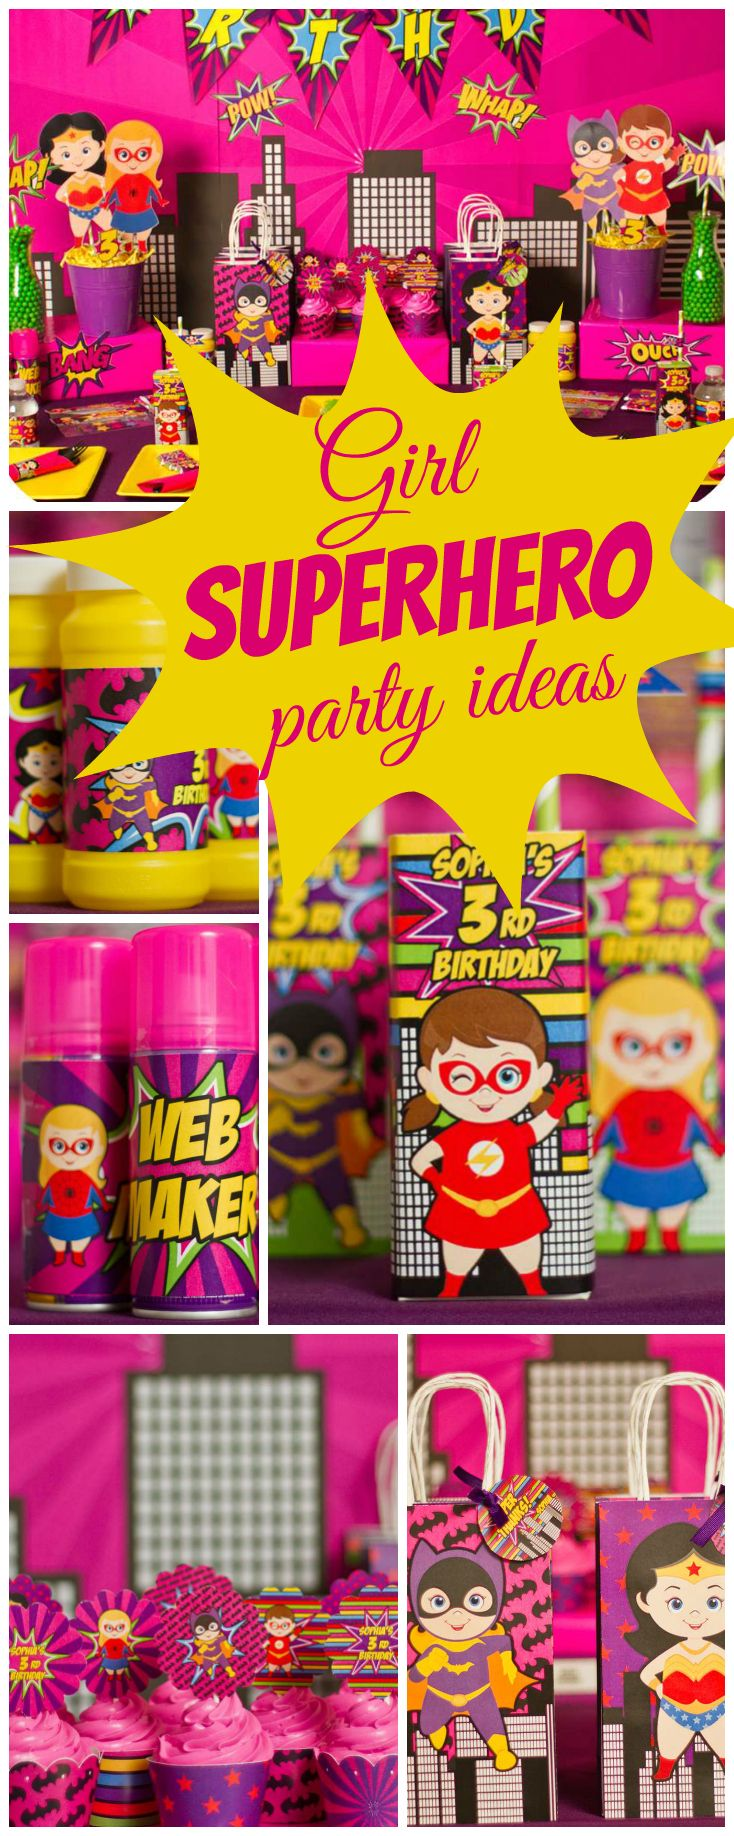 Here's a purple and pink superhero party for girls! See more party ideas at CatchMyParty.com!